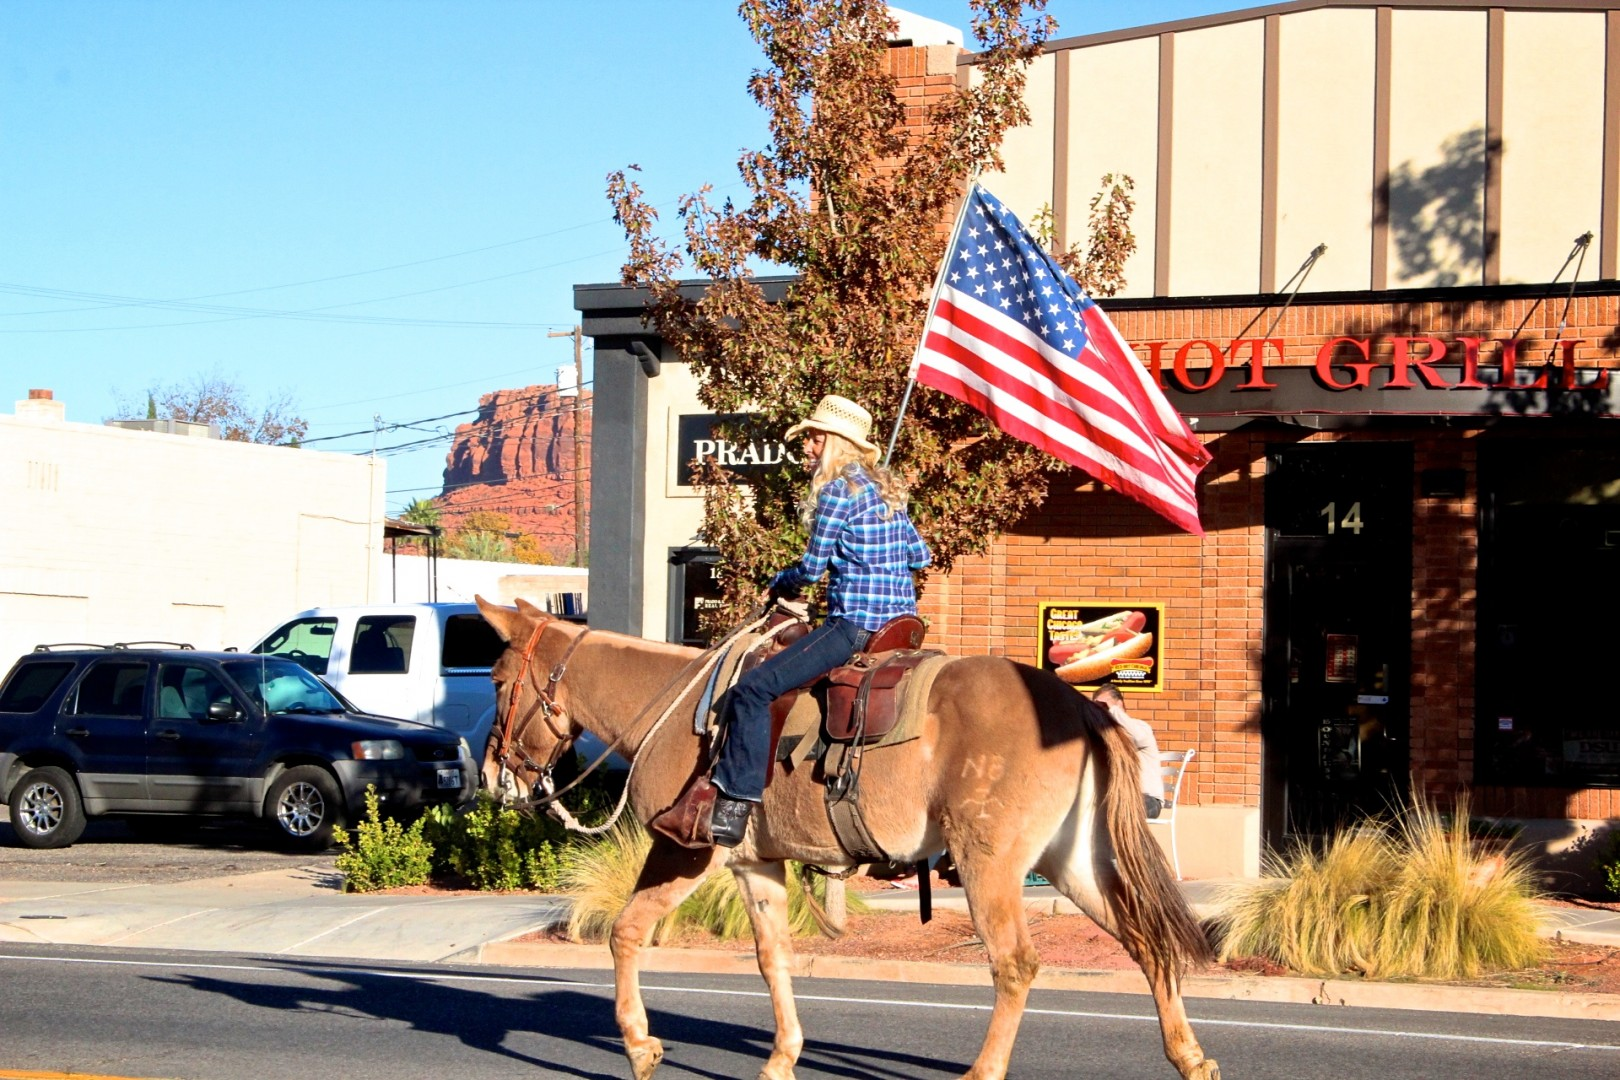 Veterans Day parade and presentation in St. George, Utah, Nov. 11, 2013 | Photo by Michael Nielsen, St. George News